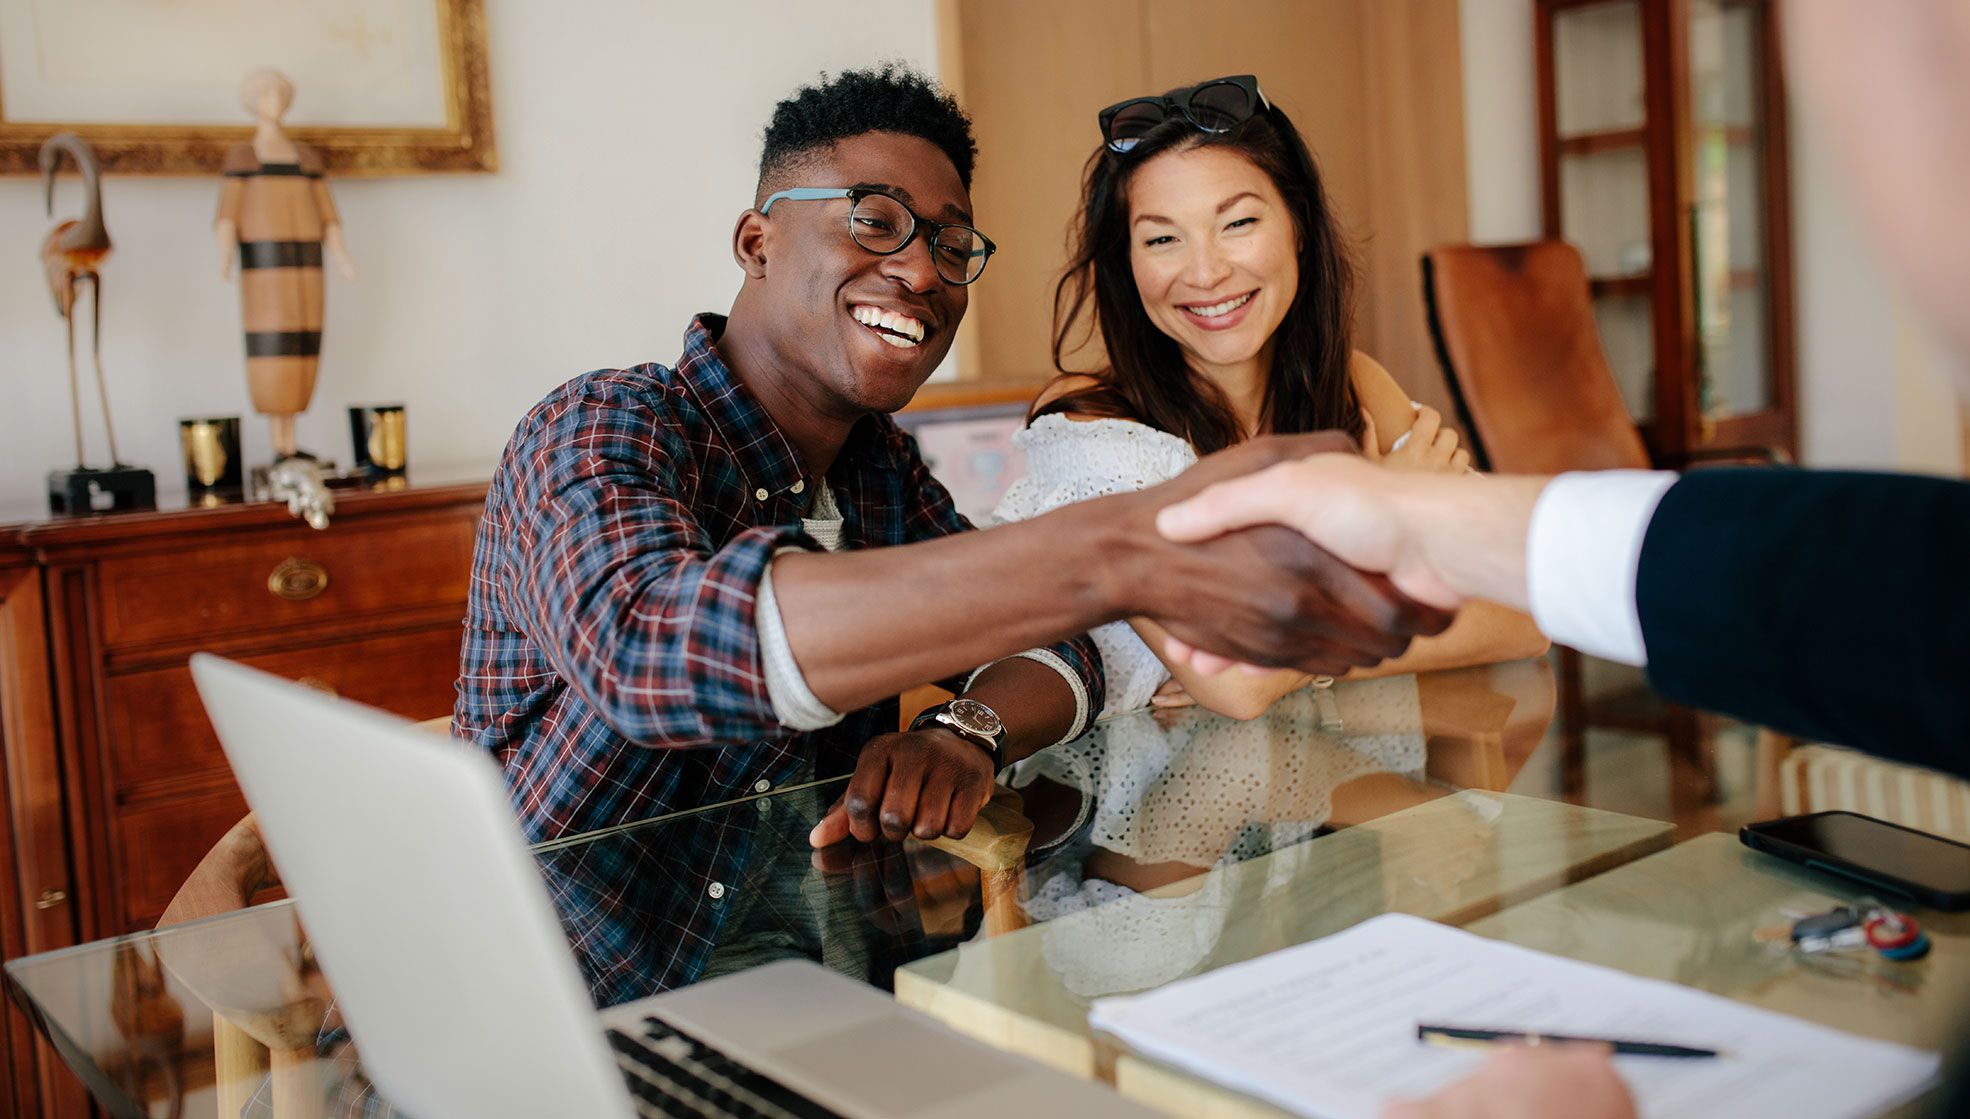 How Lenders Can Stand Out and Attract New Borrowers